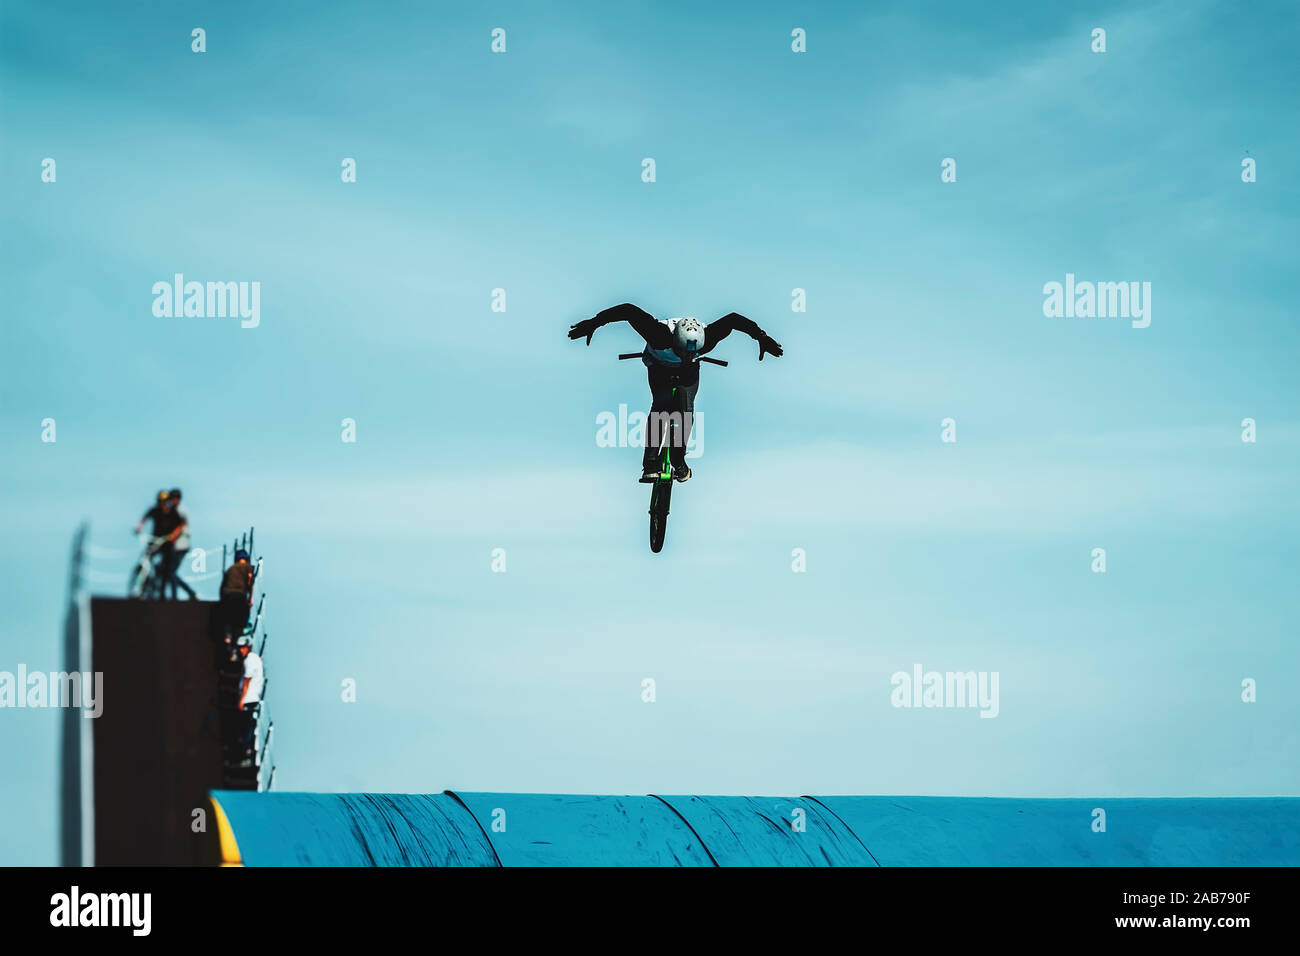 Silhouette of a unrecognizable young bike rider performing aerial BMX trick against blue sky. Extreme sport, youth culture Stock Photo